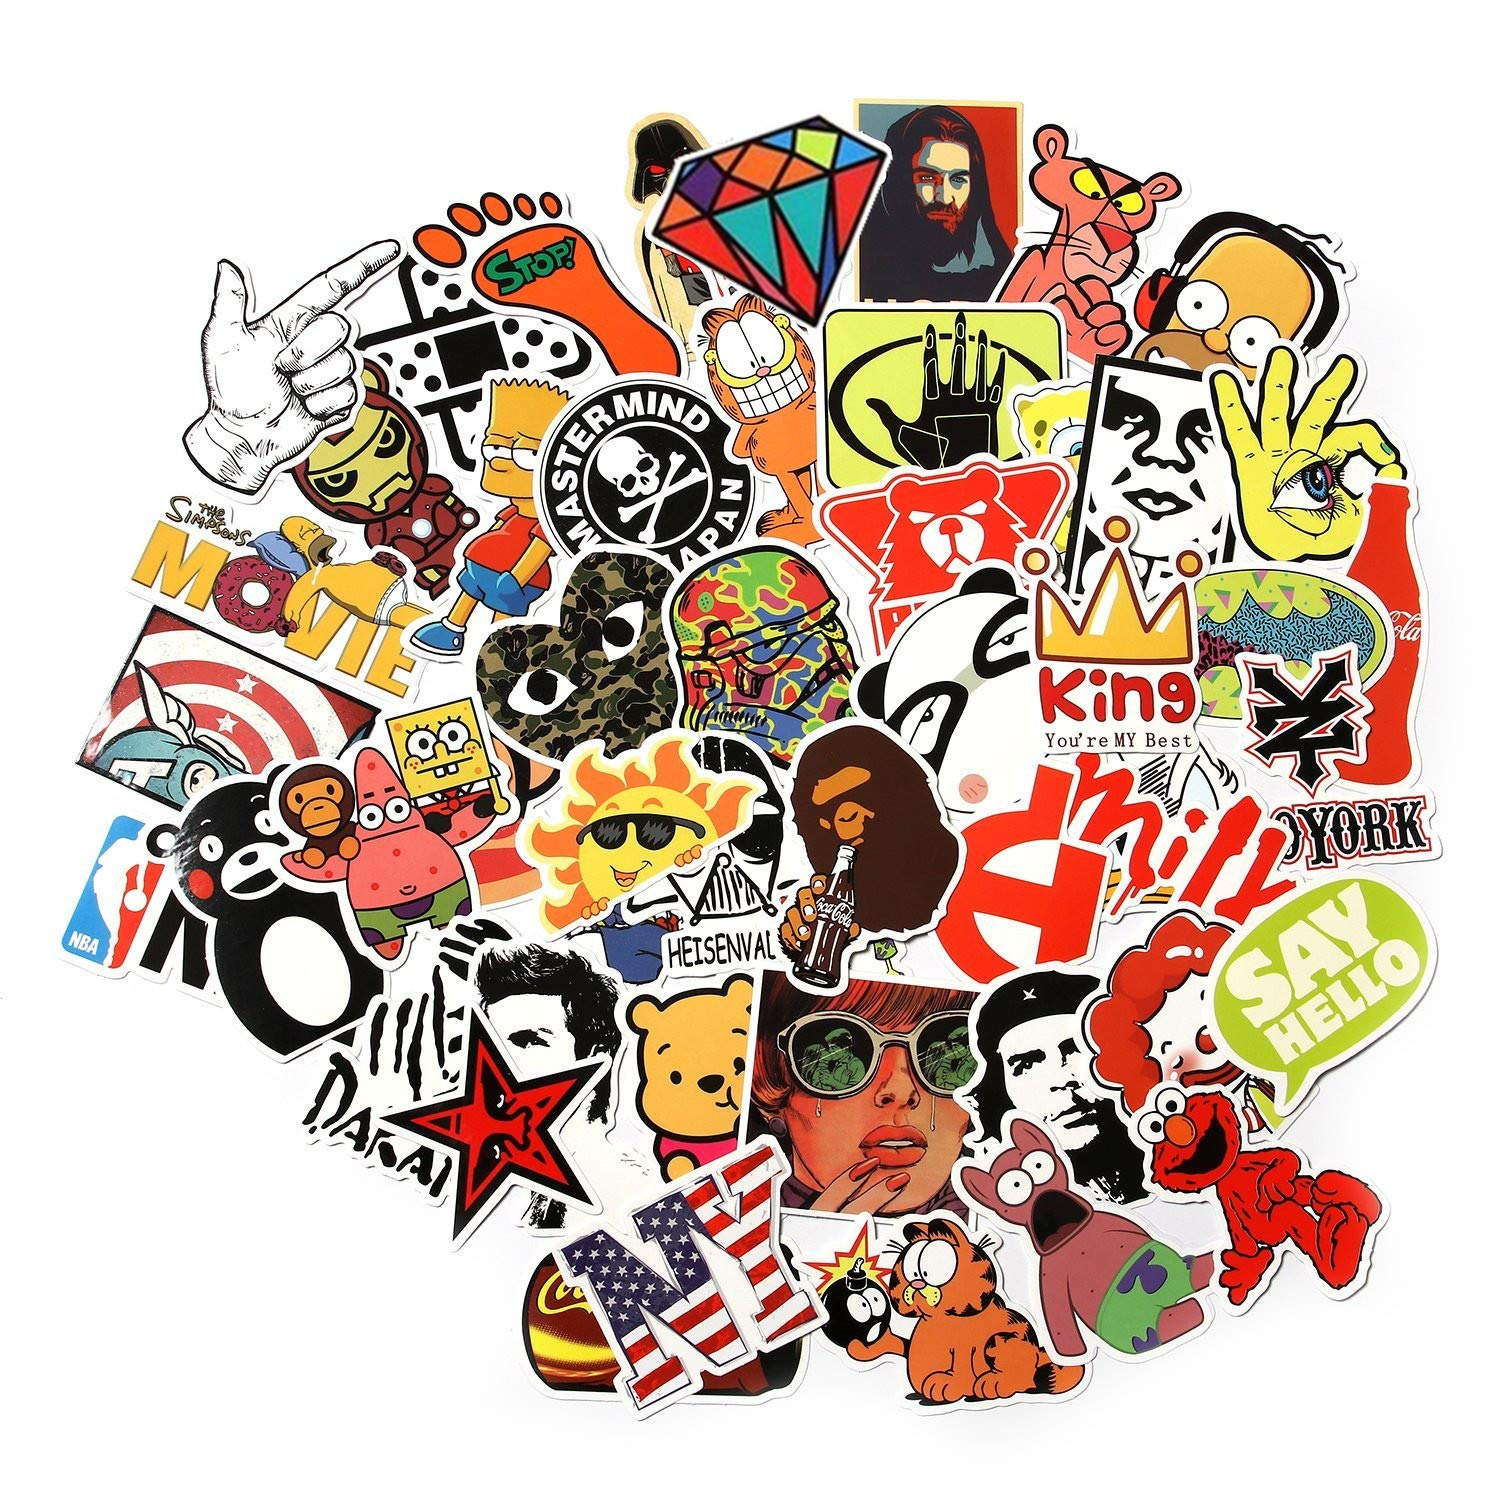 Sticker Pack Decals Vinyls for Laptop,Kids,Cars,Motorcycle,Bicycle,Skateboard Luggage,Bumper Stickers Hippie Decals bomb Waterproof Random 200Pcs